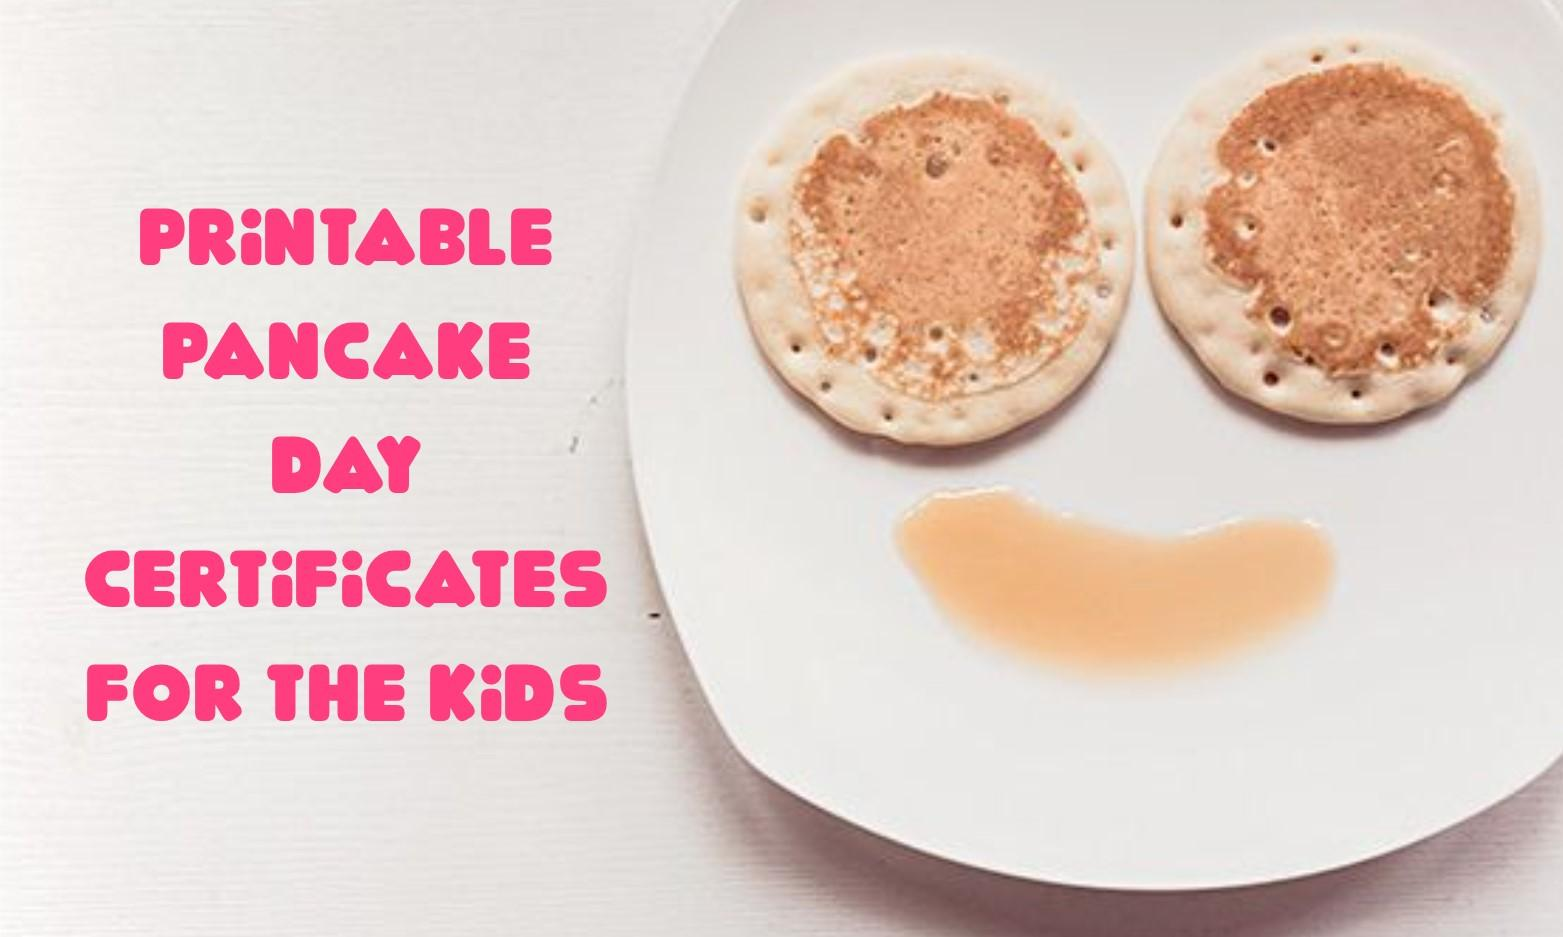 Printable Pancake Day Certificates for the Kids